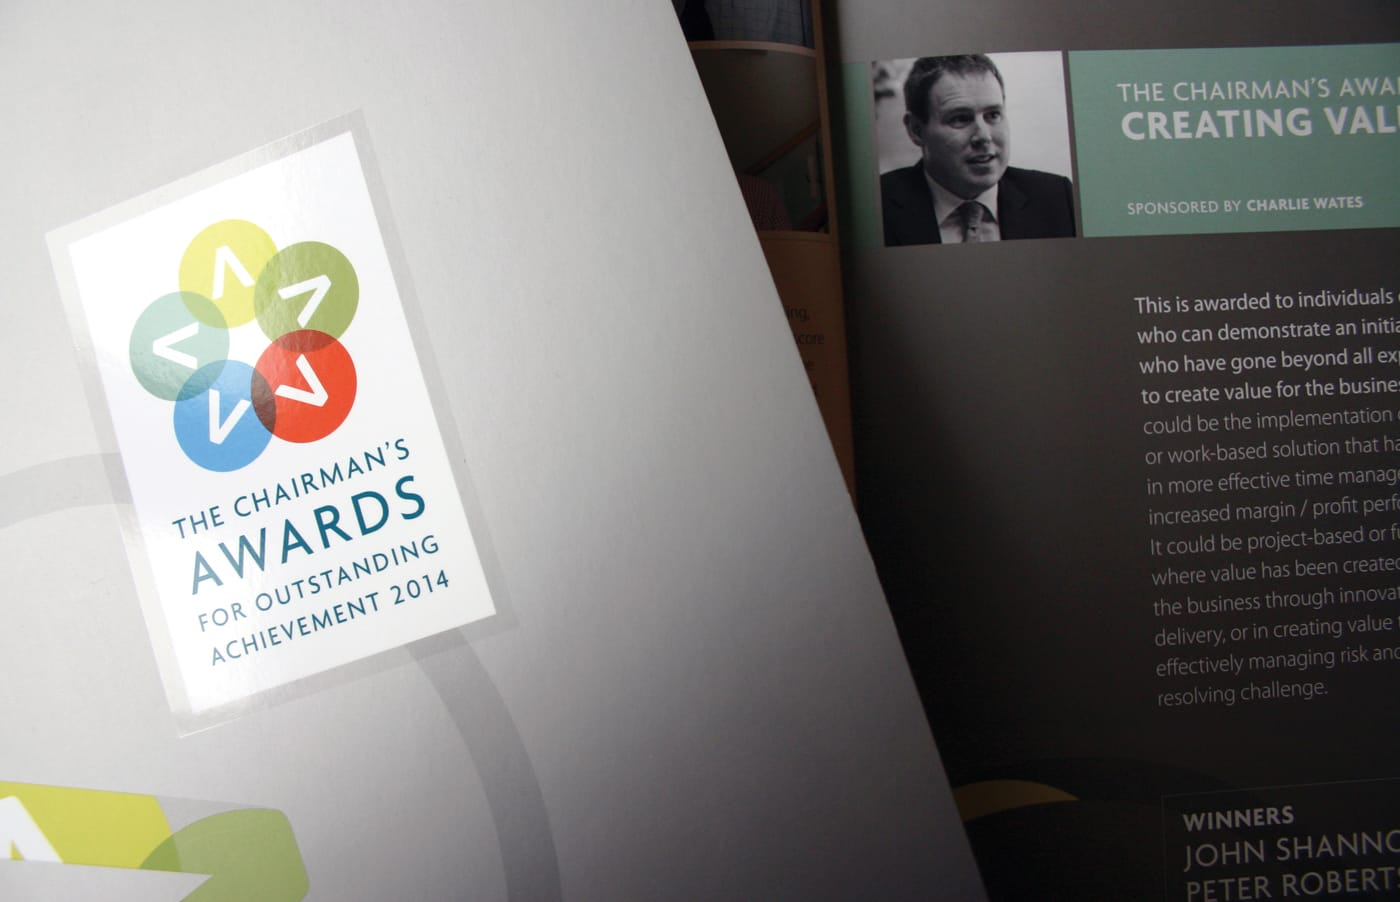 Branding exercise and creation of event brochures, invites, and graphics for an annual awards event on behalf of one of the UK's largest construction companies.